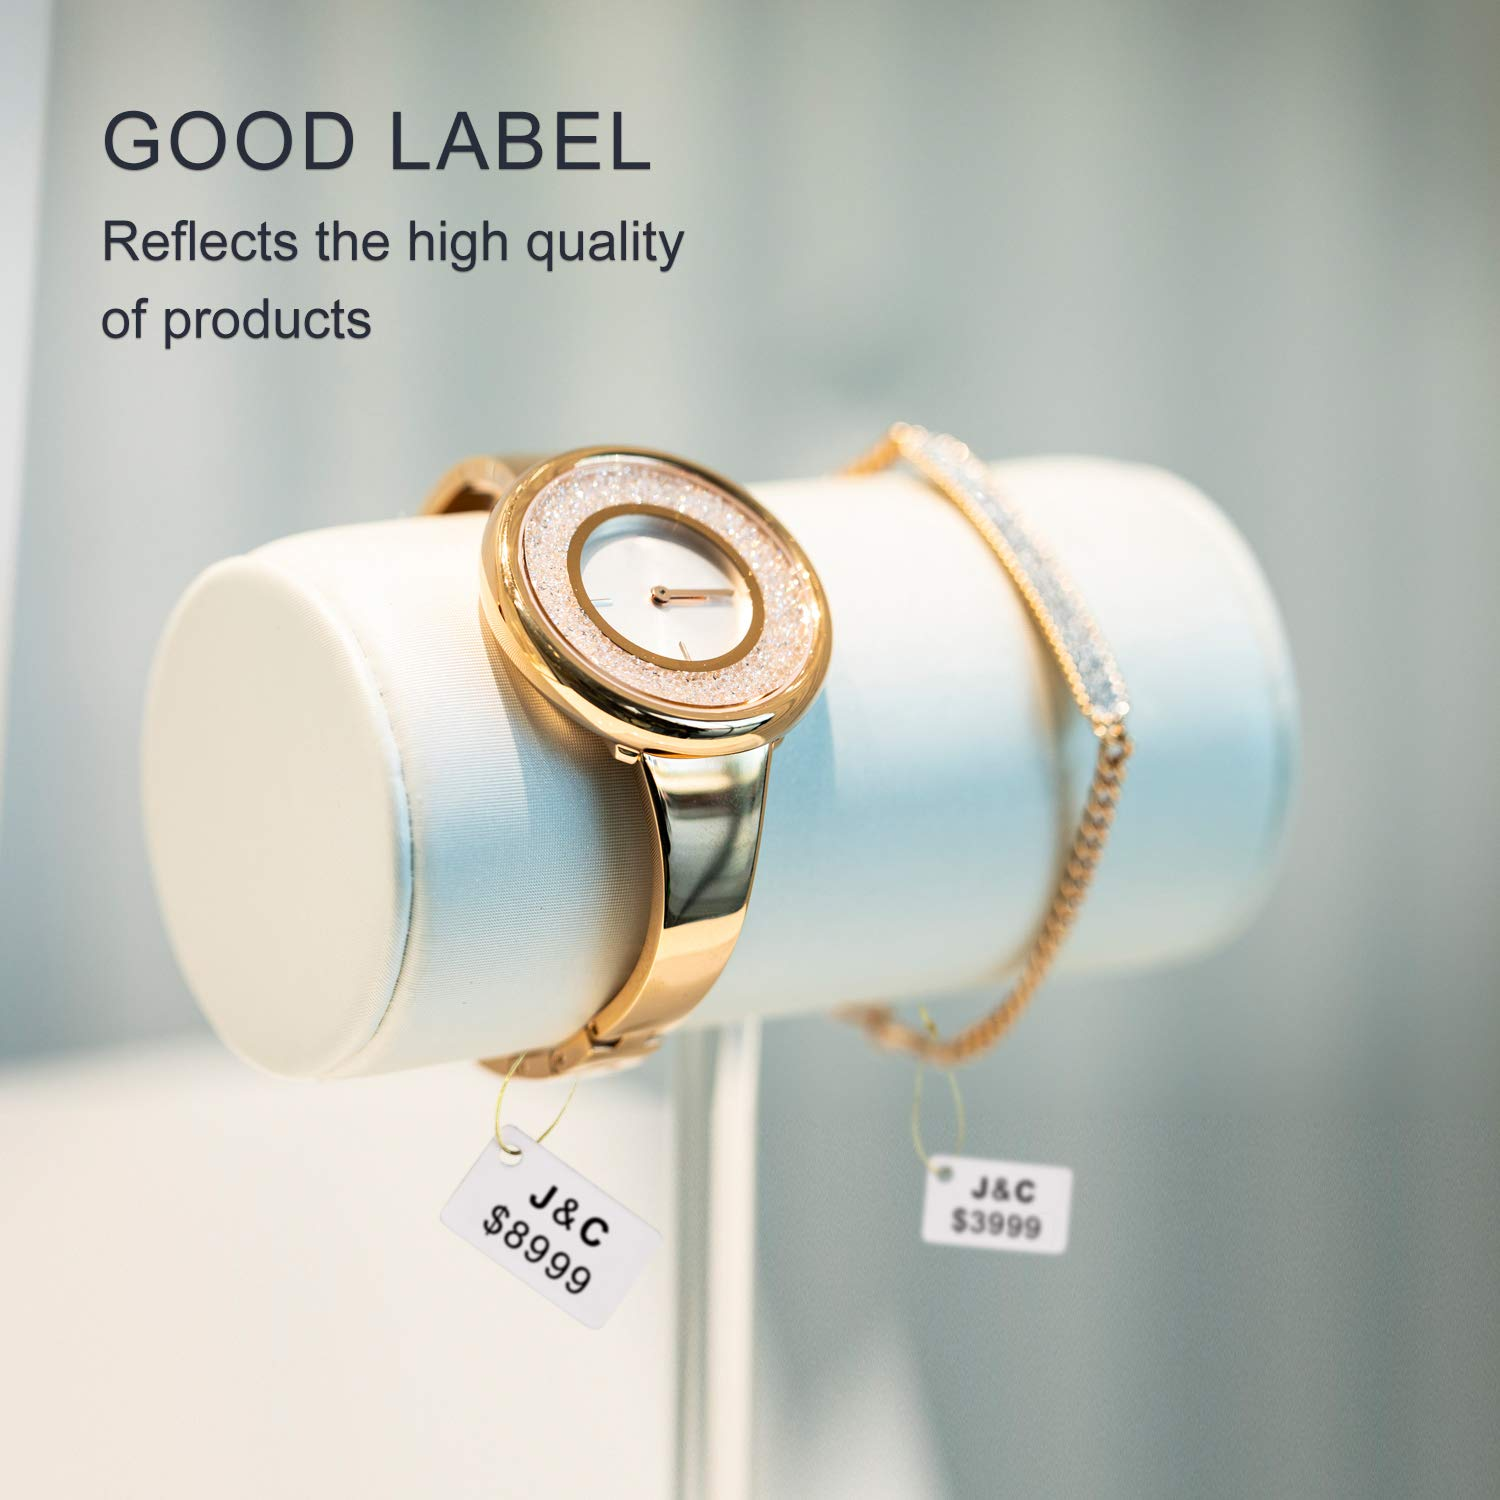 """JINGCHEN Thermal Label Paper Widely Used in Jewelry//Bracelets//Watches//Accessories//Glasses Label Printing 1.18""""x0.59""""+0.59"""",460 Labels//Roll Print with B11//B3"""